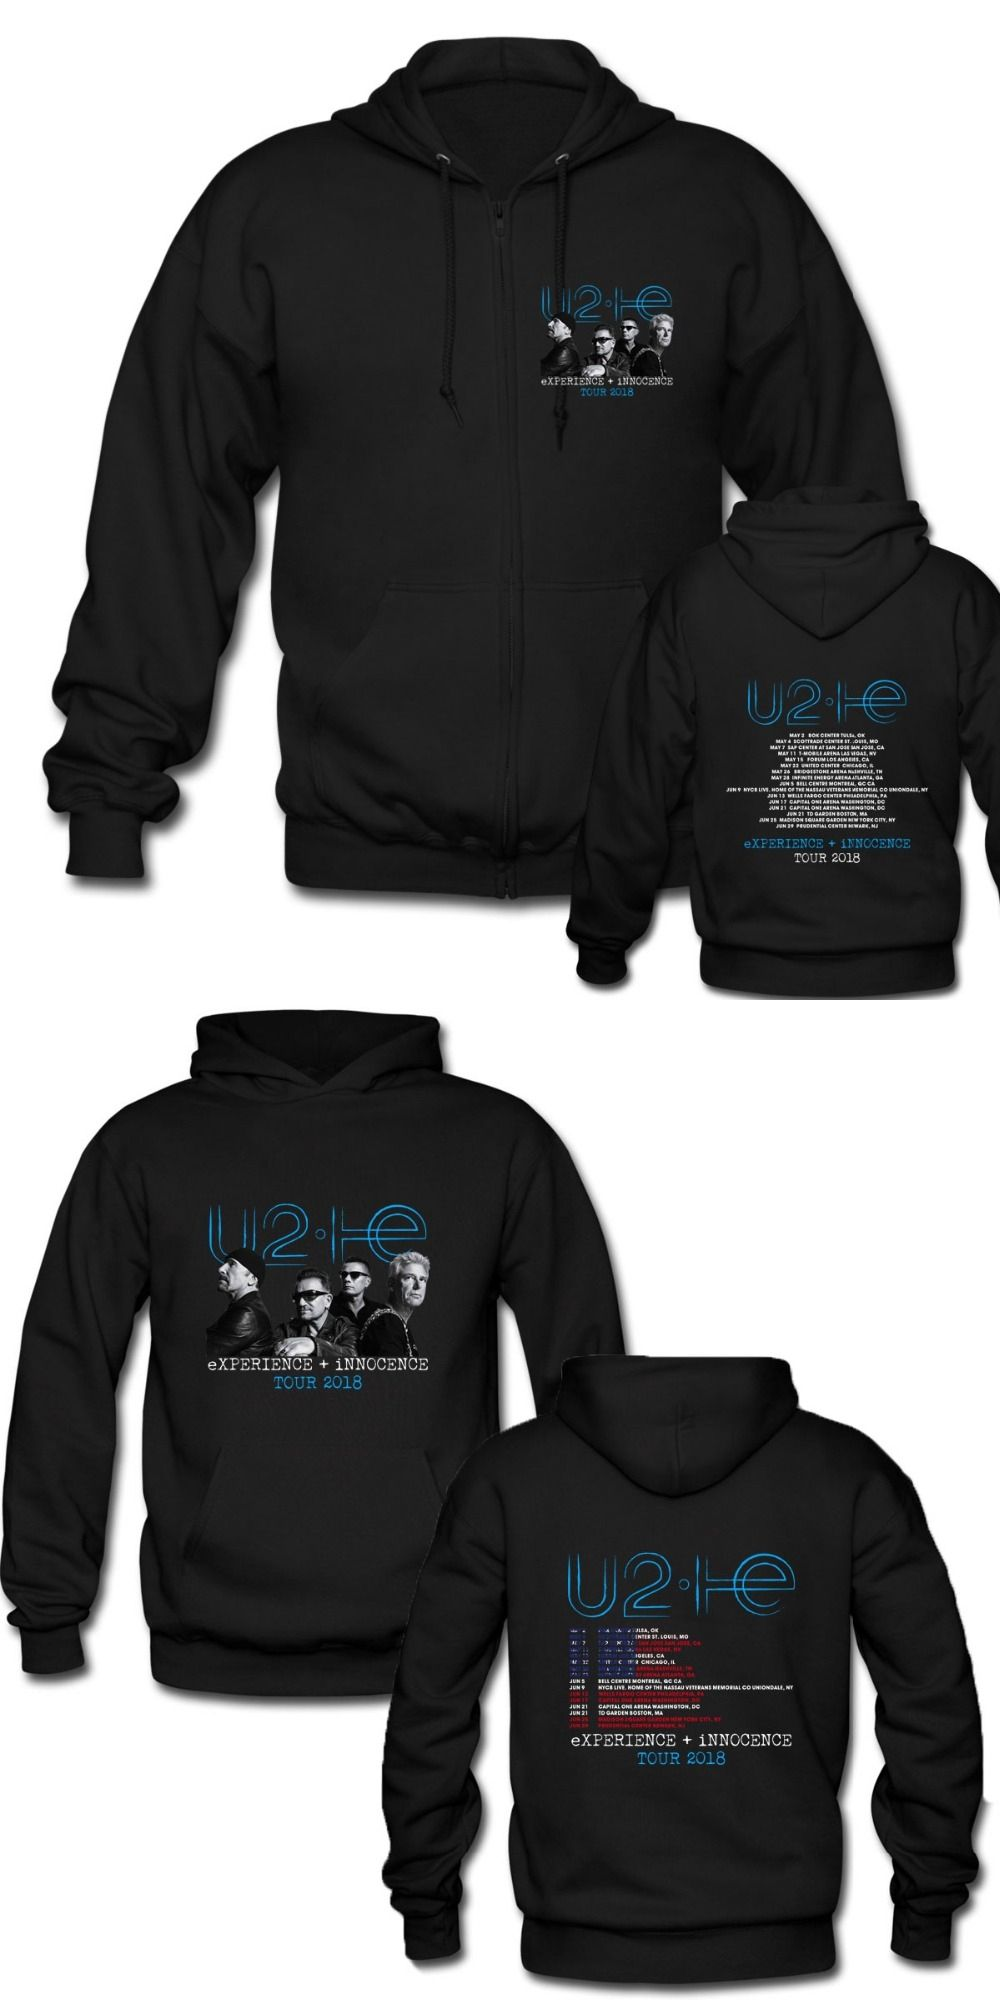 U2 eXperience + Innocence Rock Band 2018 Tour Date Black Fashion Zipper  Hooded Punk Rock Hoodies Men Women Pullover Coat d07a123331f